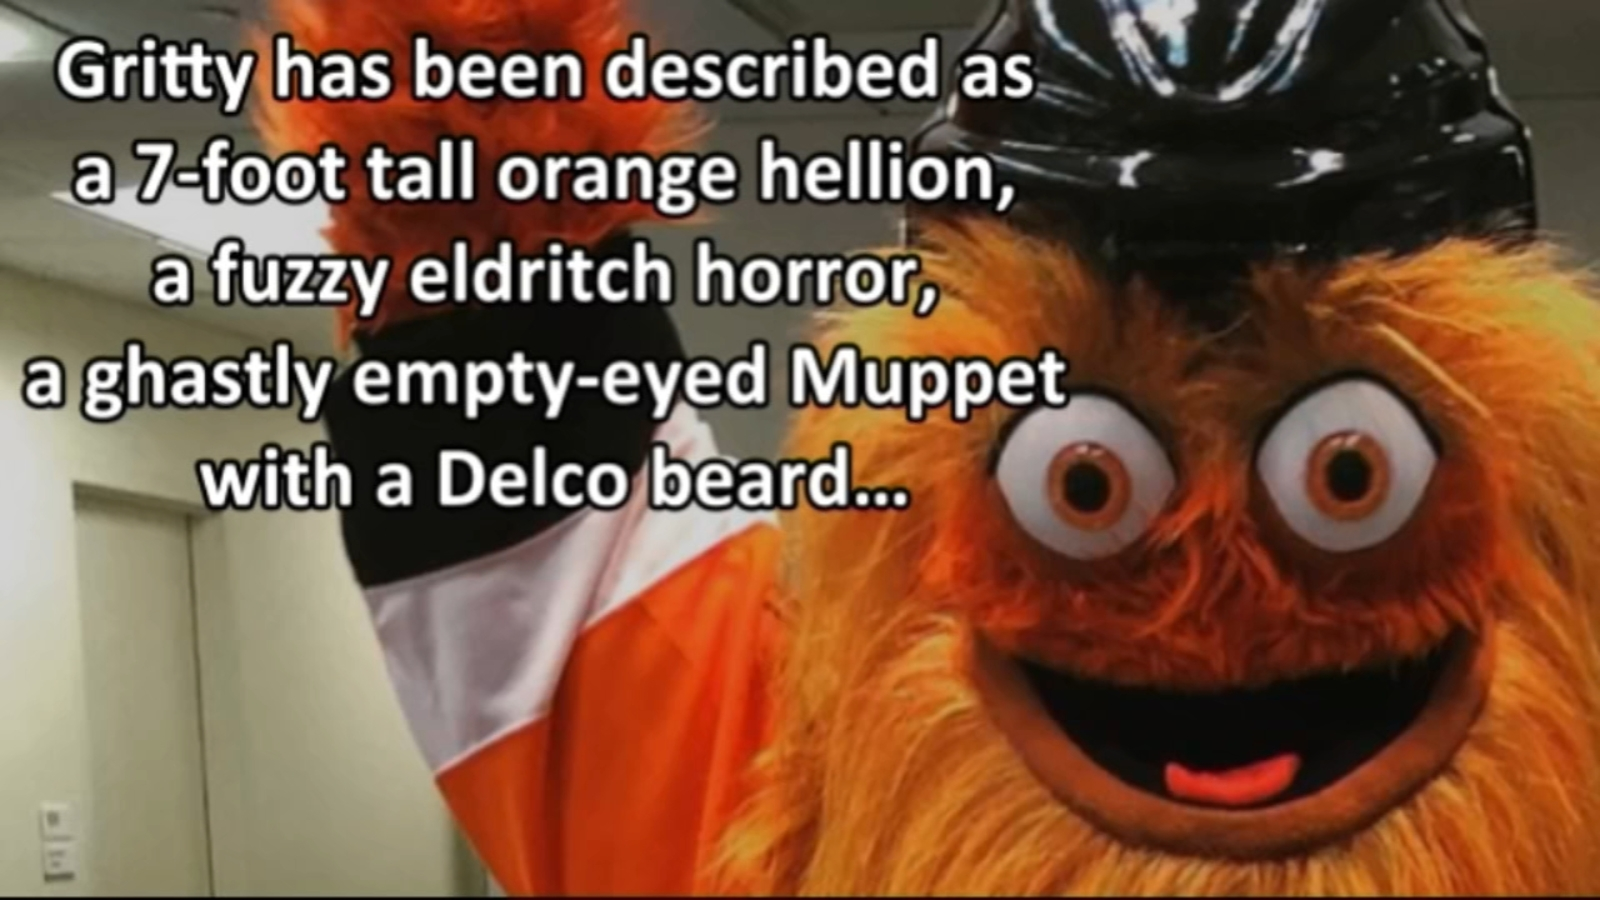 Philadelphia City Council honors Gritty, and it's hilarious